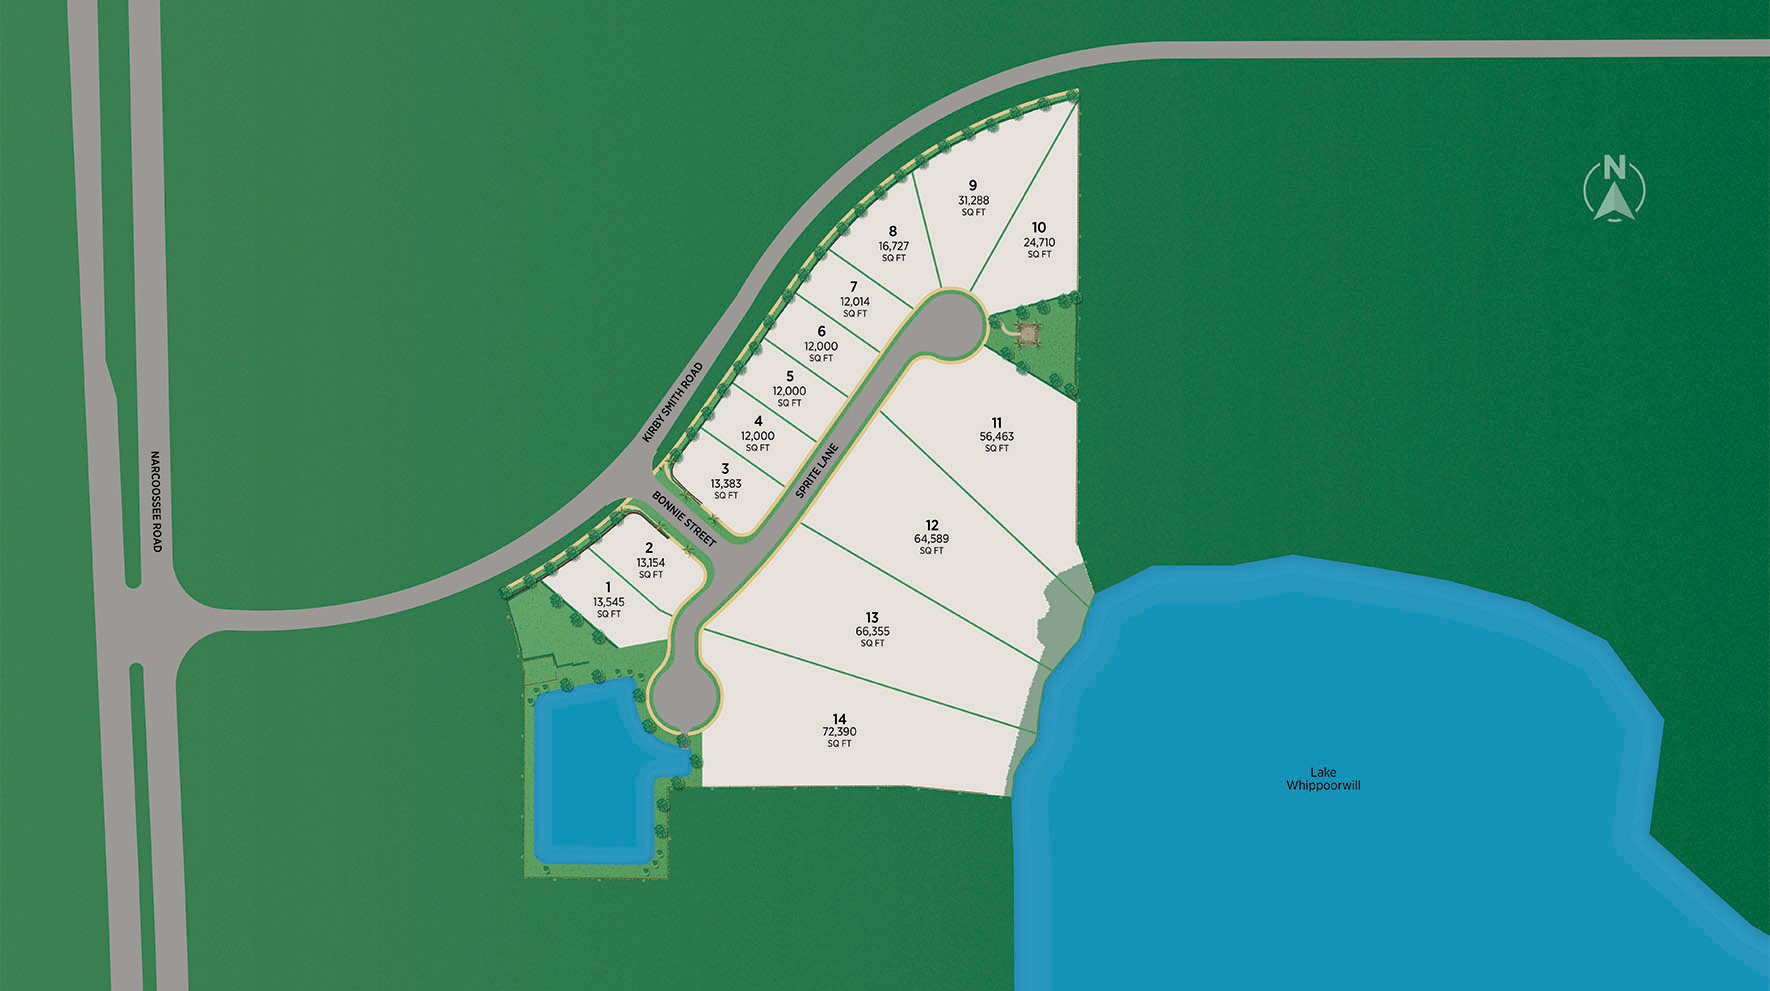 Shores at Lake Whippoorwill - Signature Collection Site Plan